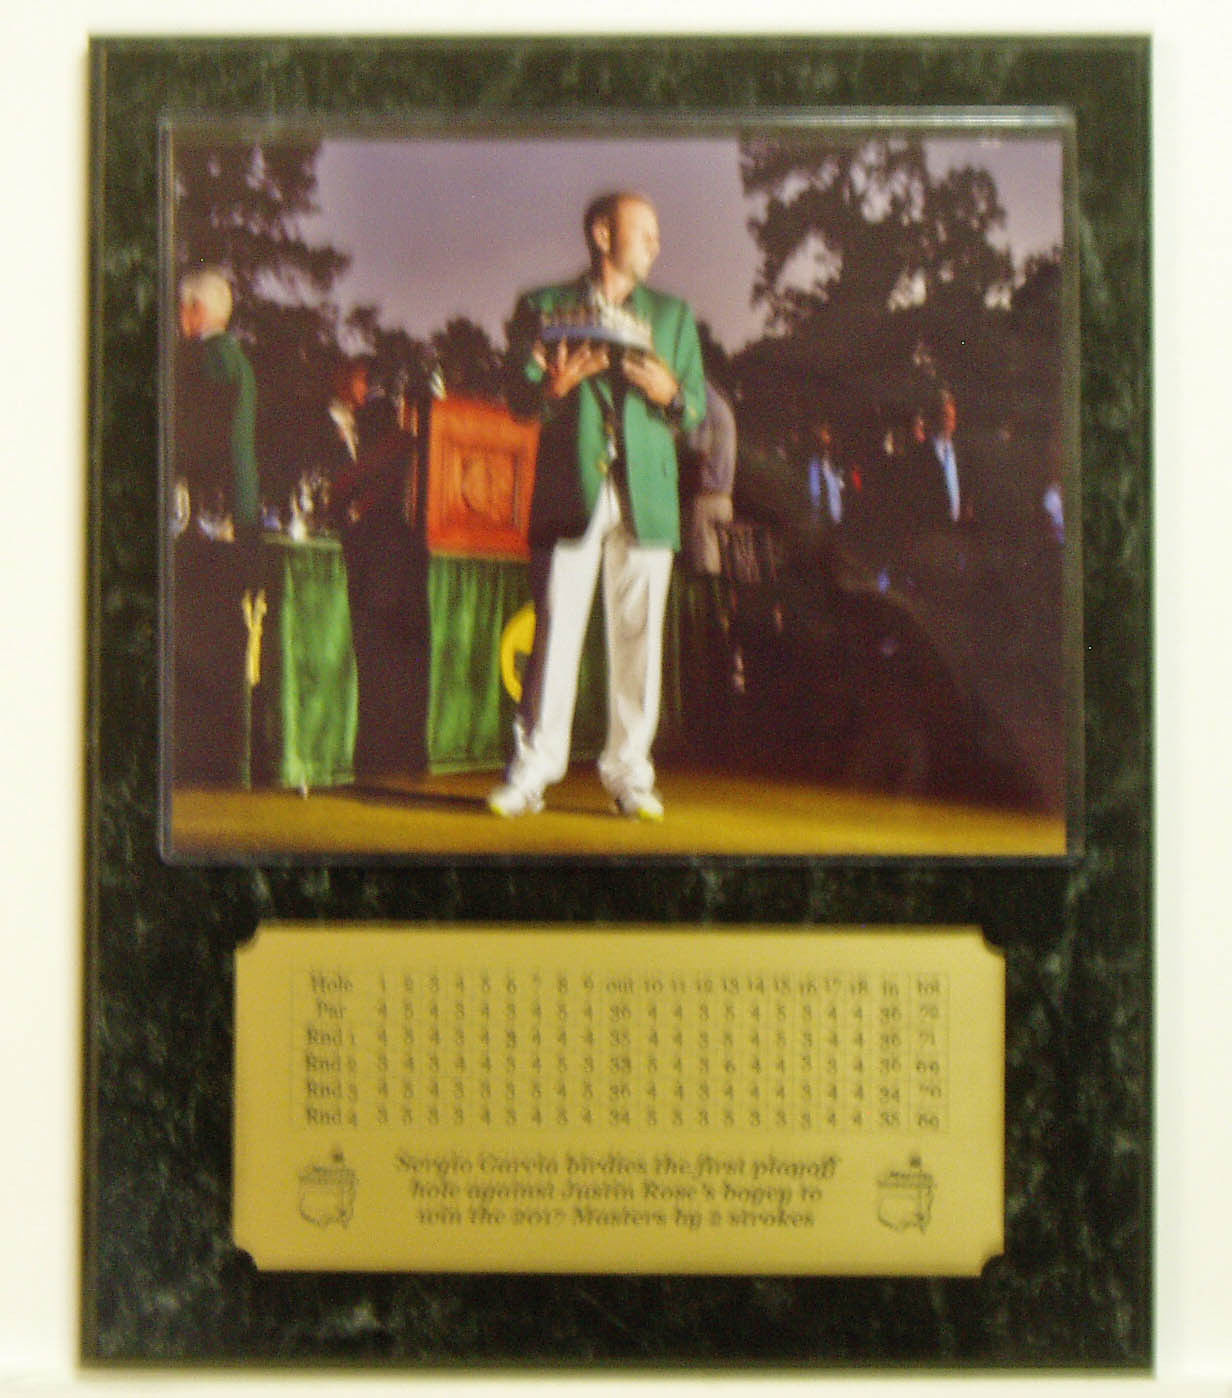 Sergio Garcia Masters 8x10 Masters Trophy Photo Plaque with Engraved Scorecard